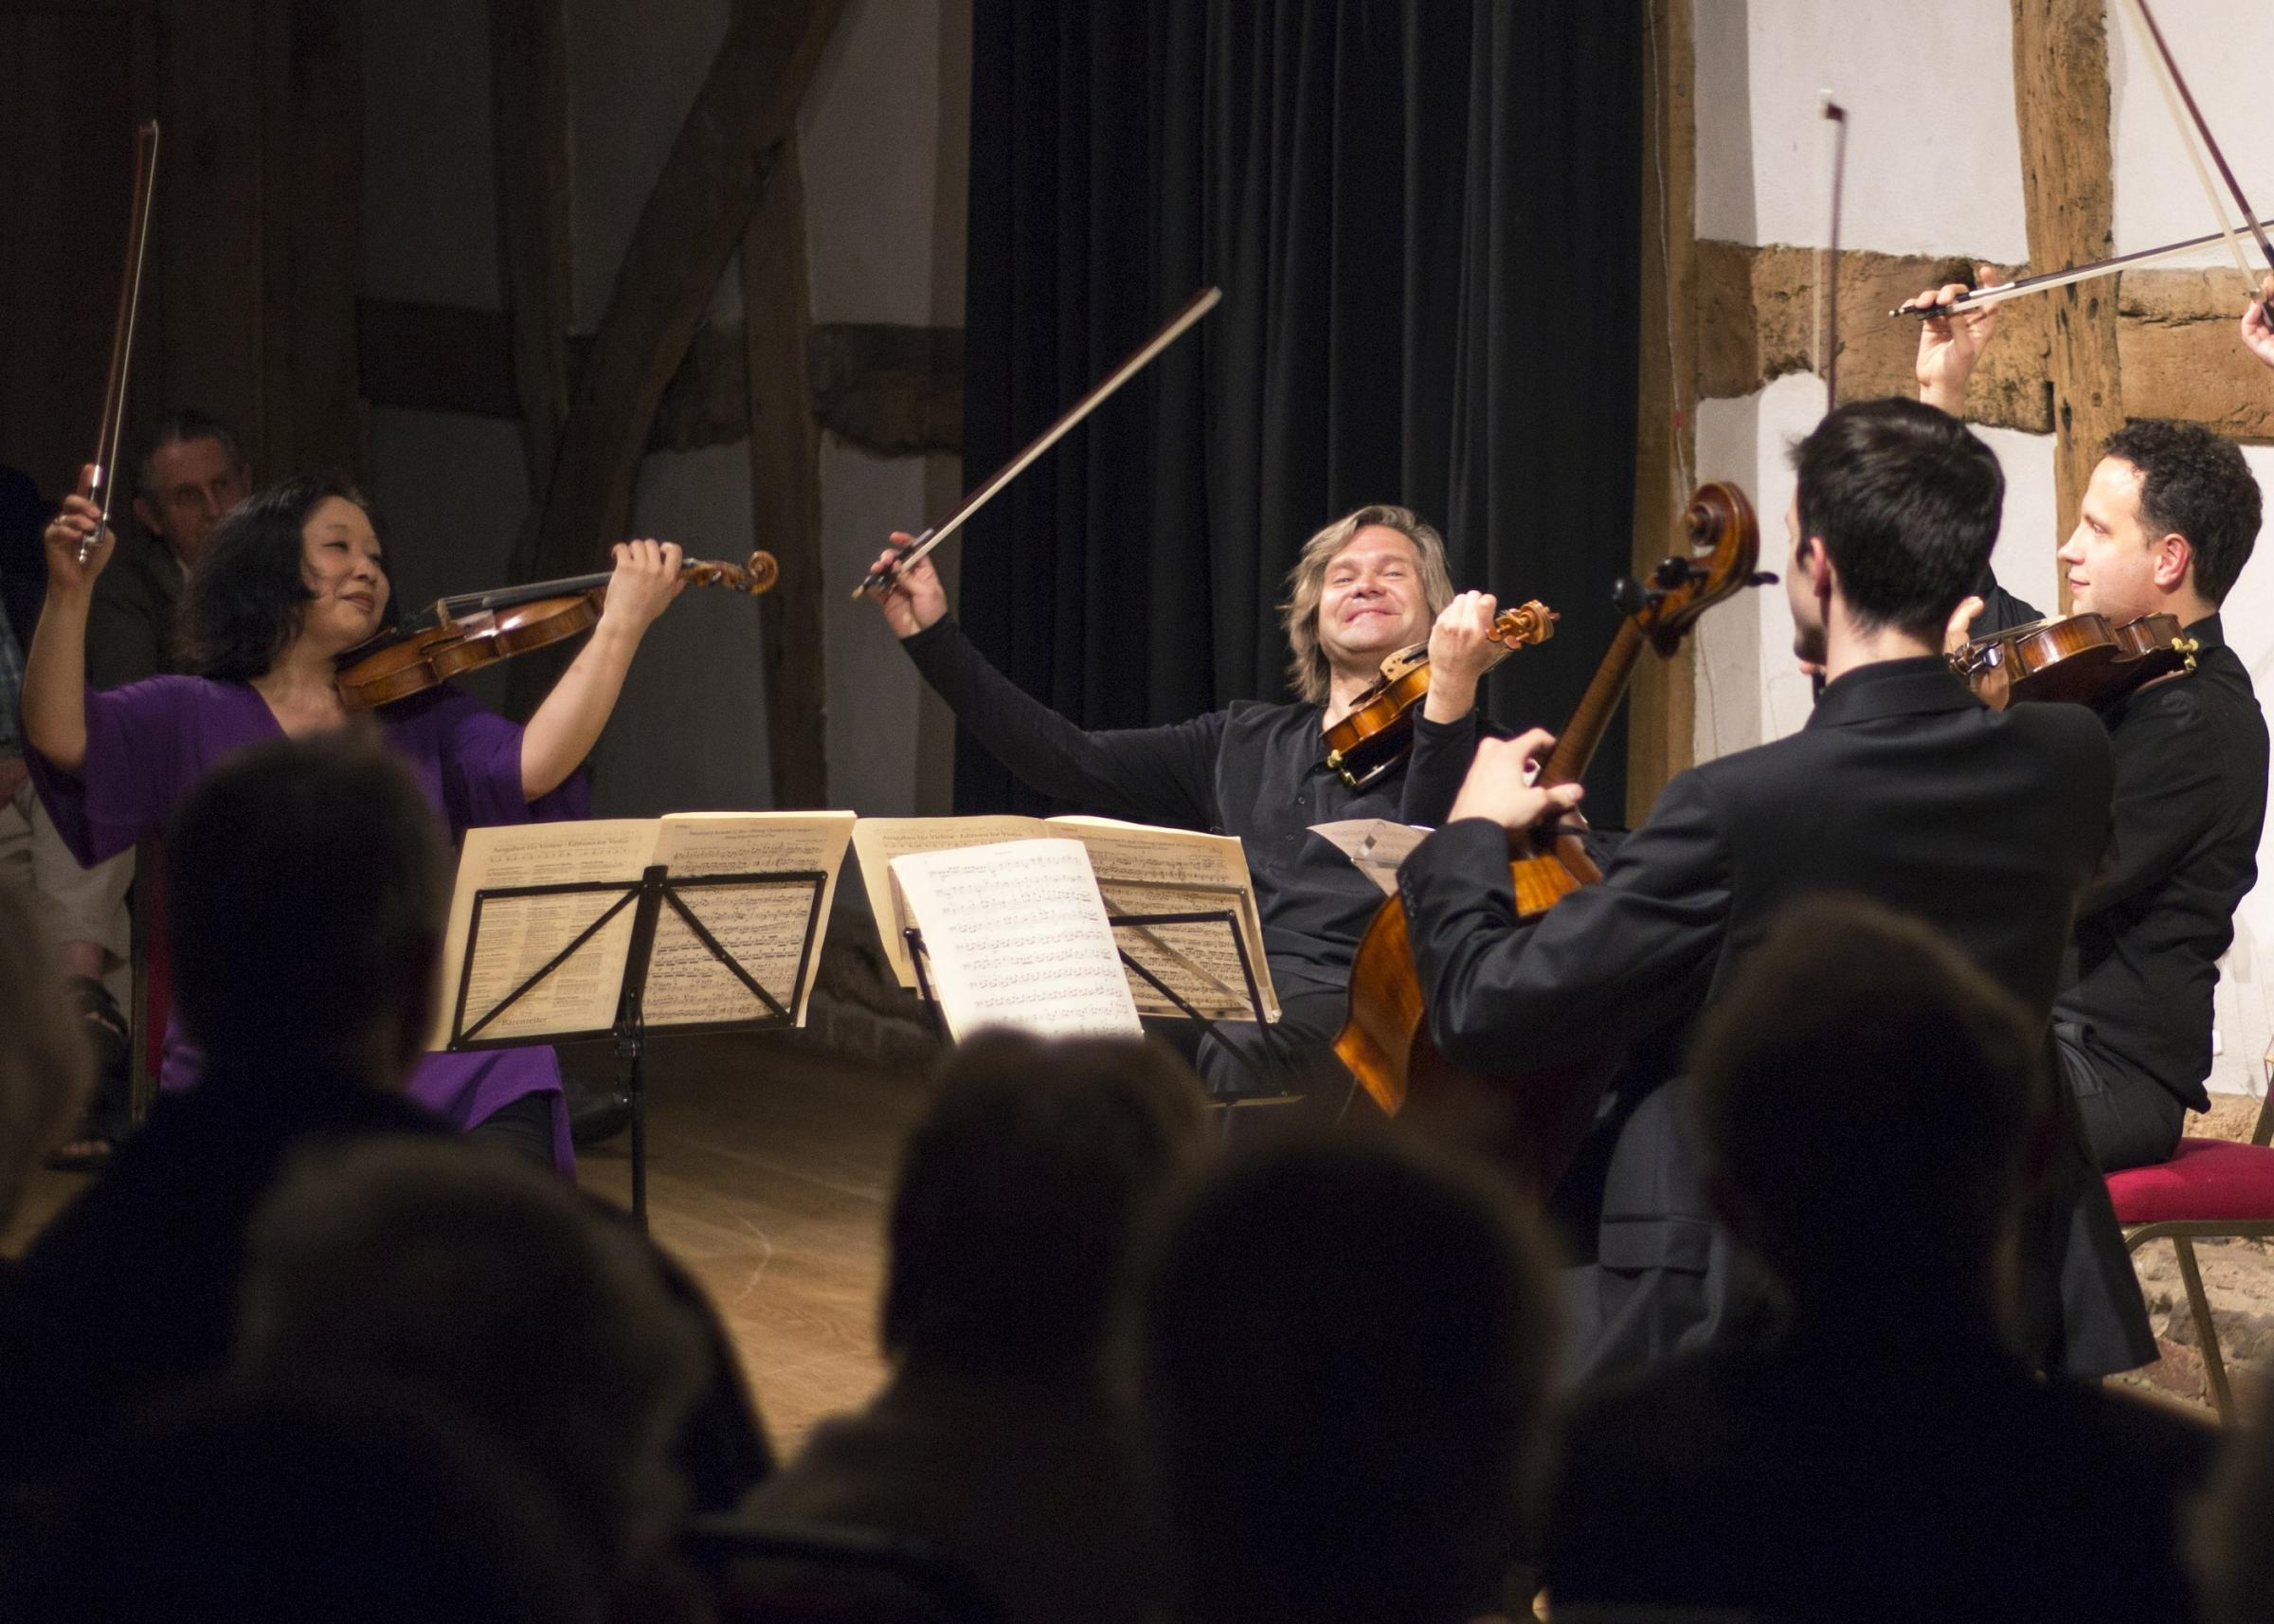 JOYFUL: Hellens is a celebrated venue for concerts